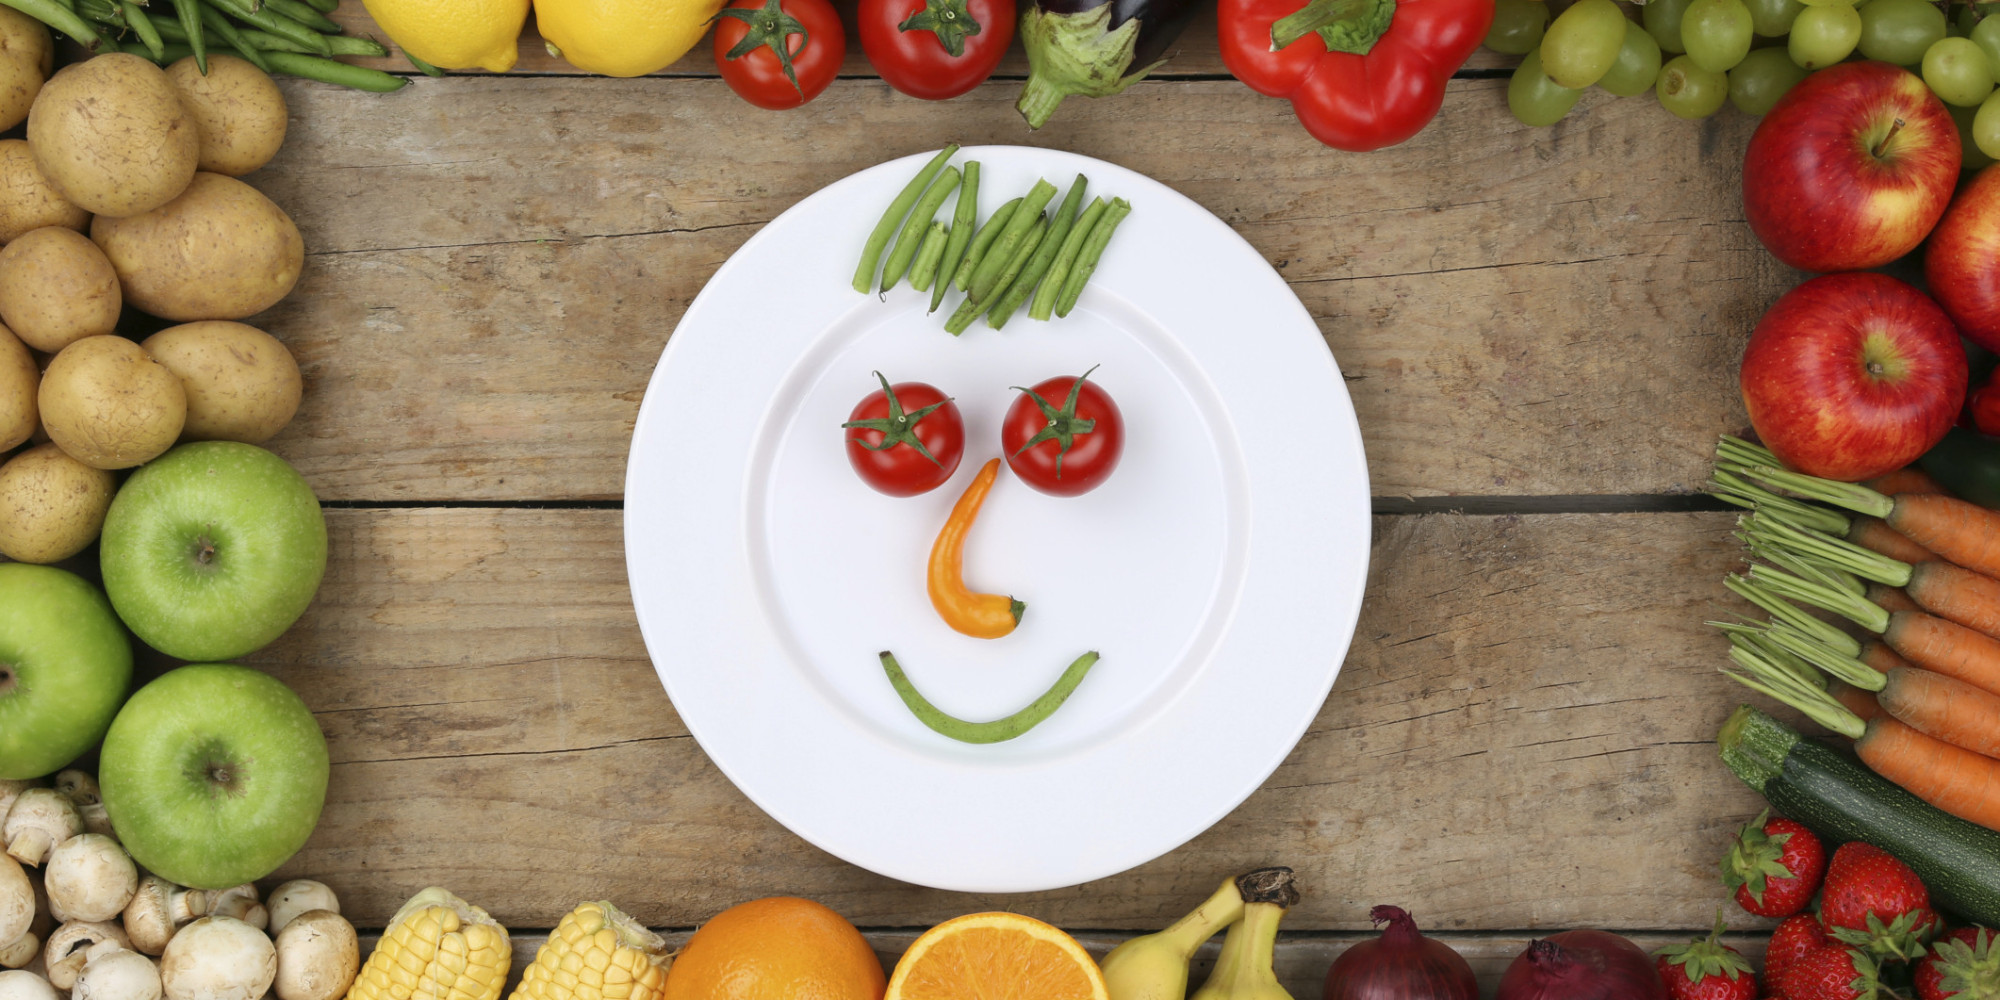 Healthy eating smiling face from vegetables on plate